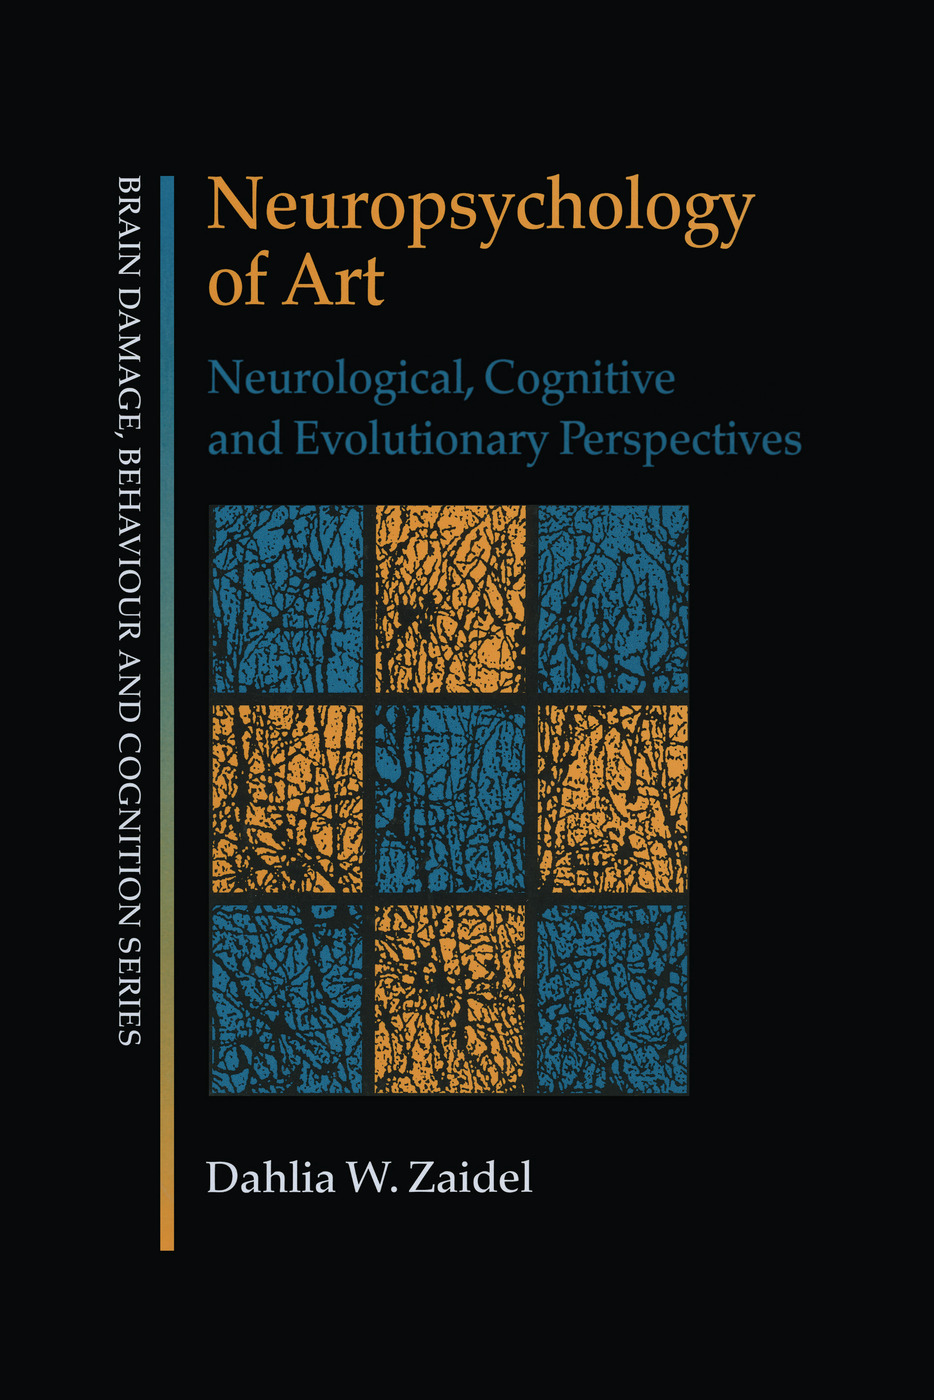 Neuropsychology of Art: Neurological, Cognitive and Evolutionary Perspectives (Paperback) book cover